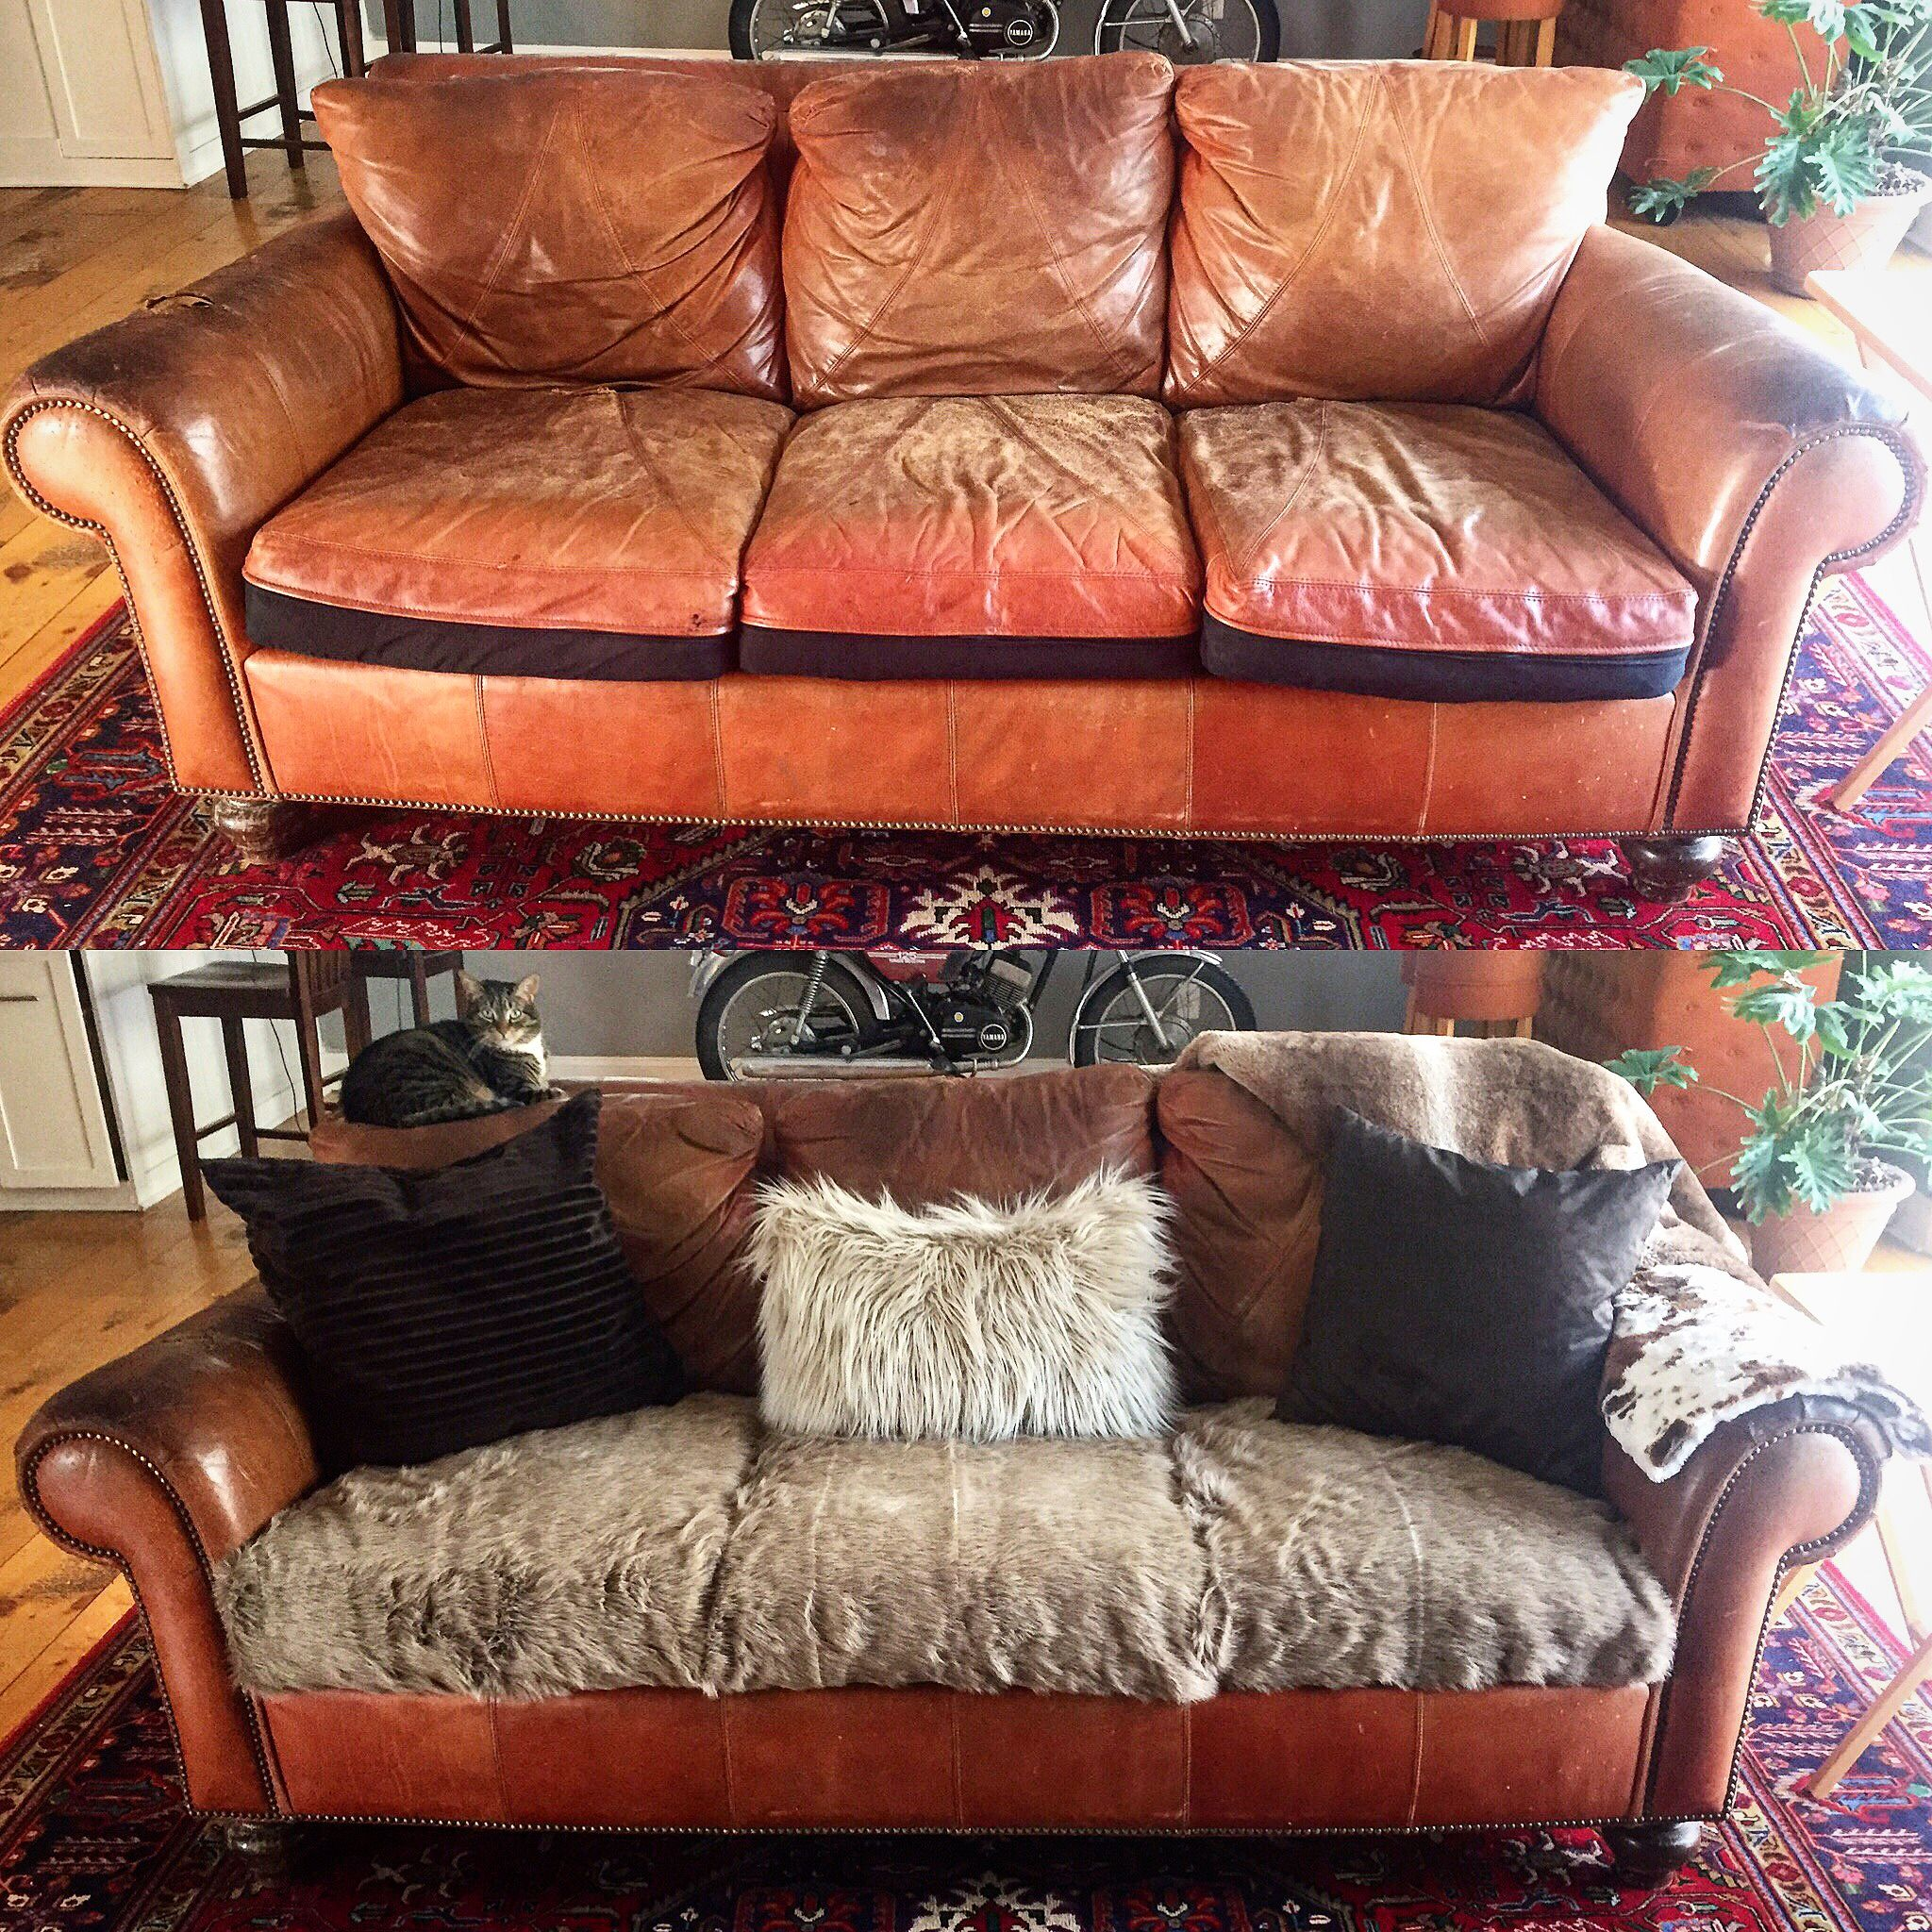 Couch Makeover •Recovered couch cushions• Vintage leather ...